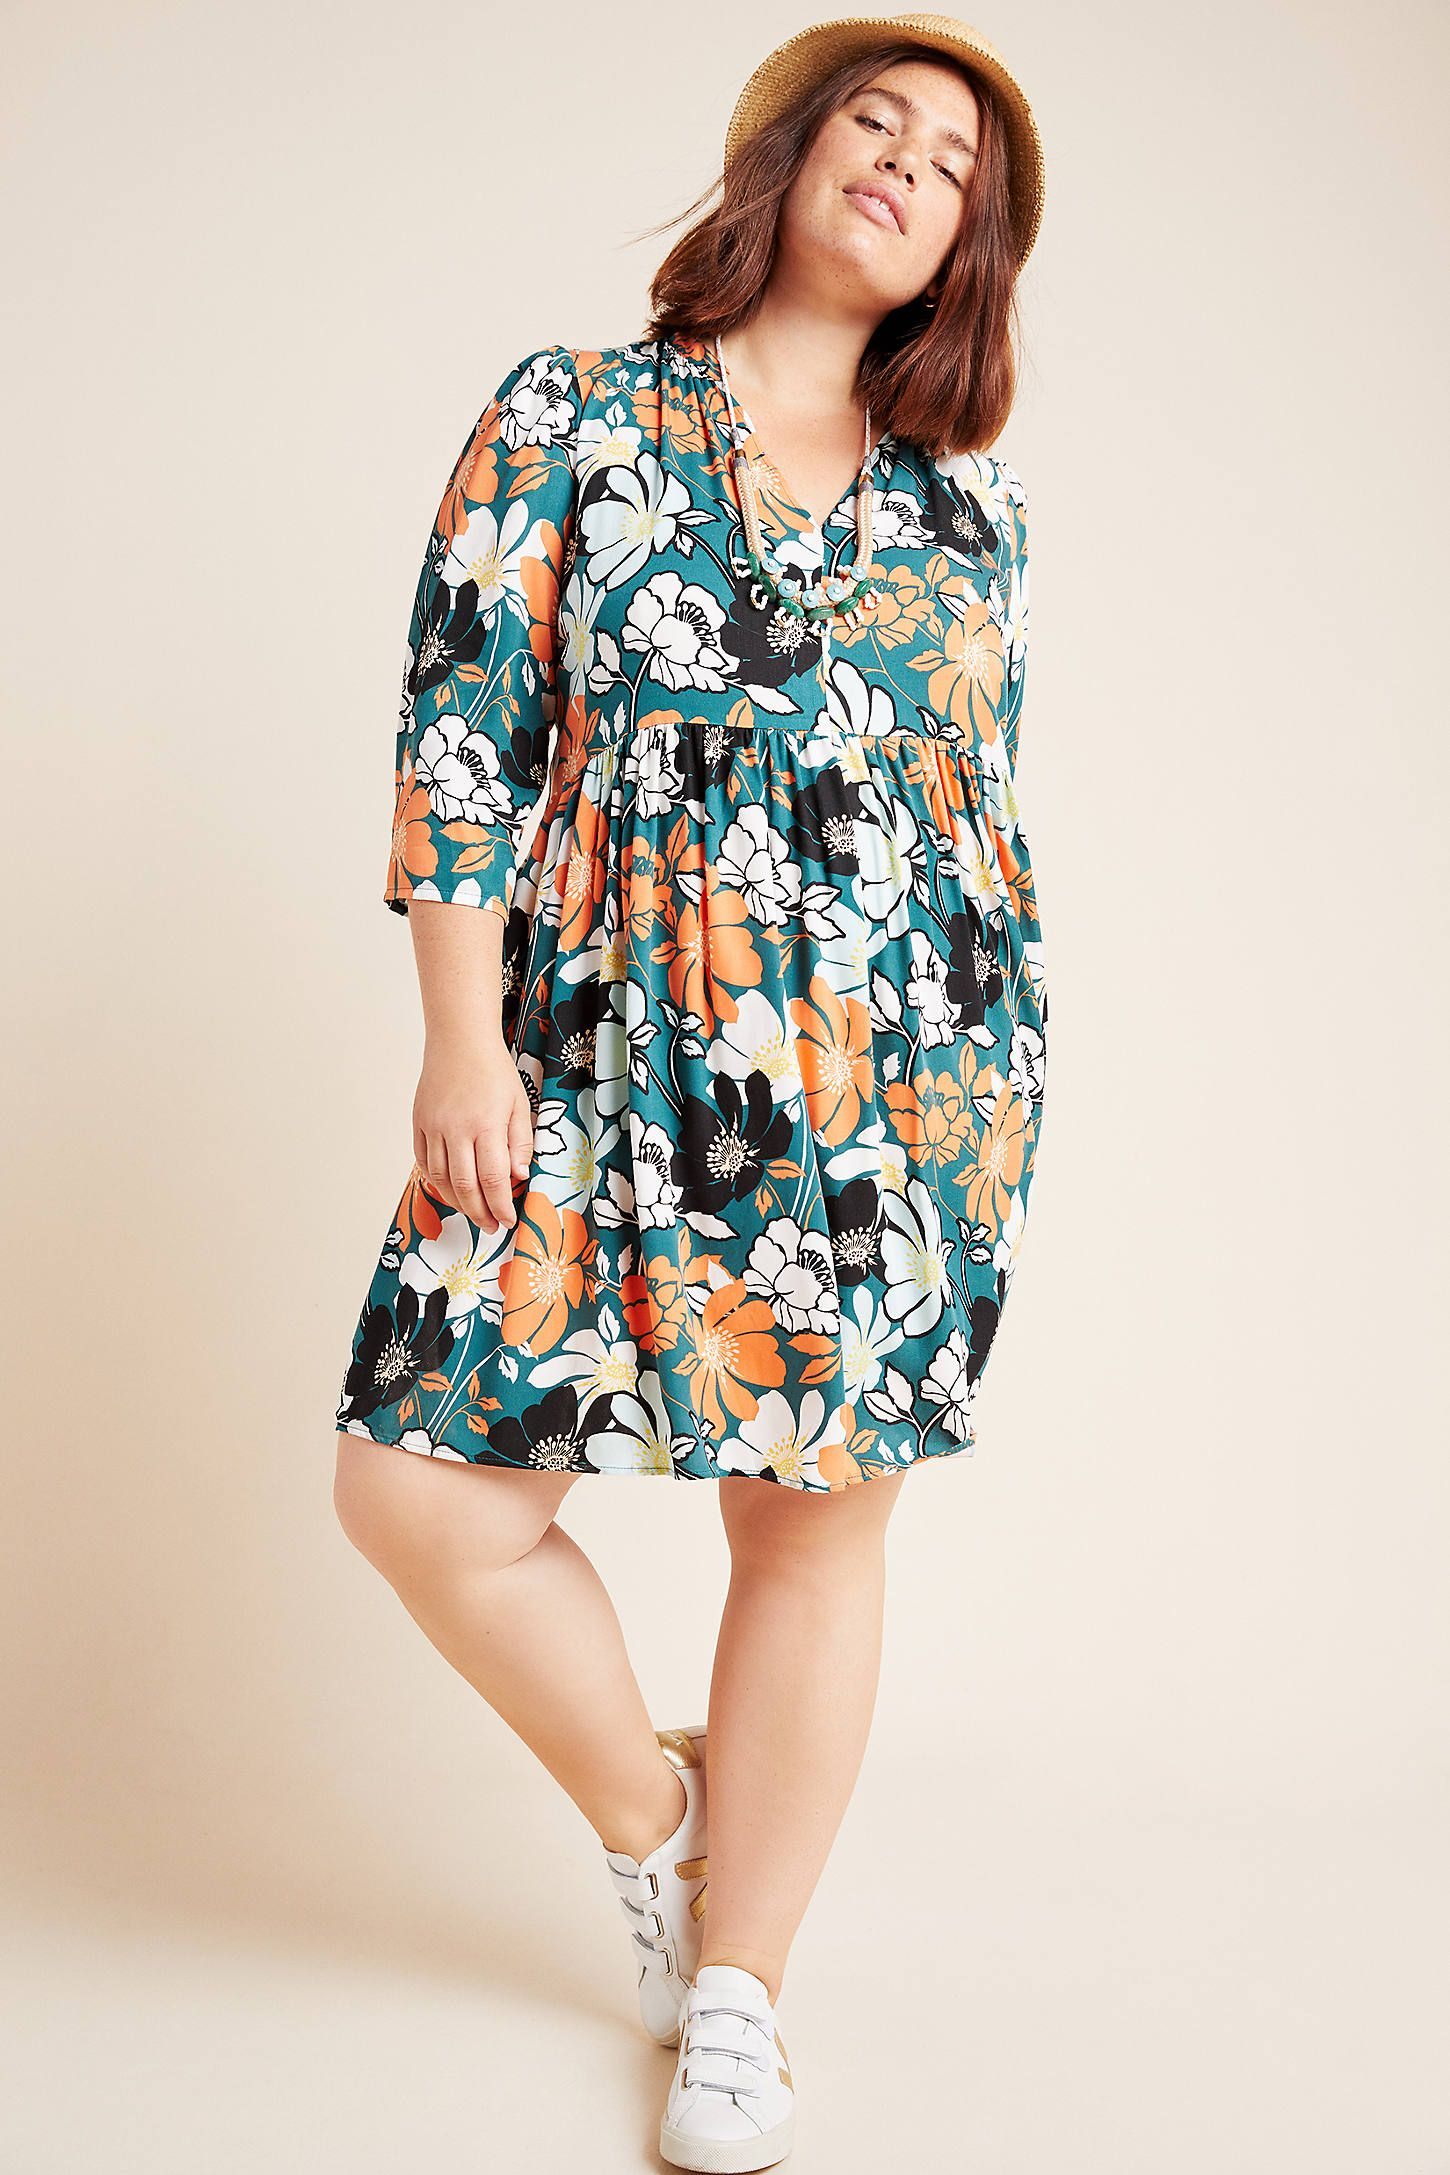 Juno Printed Dress by Maeve in Blue Size: Xs, Women's Dresses at Anthropologie